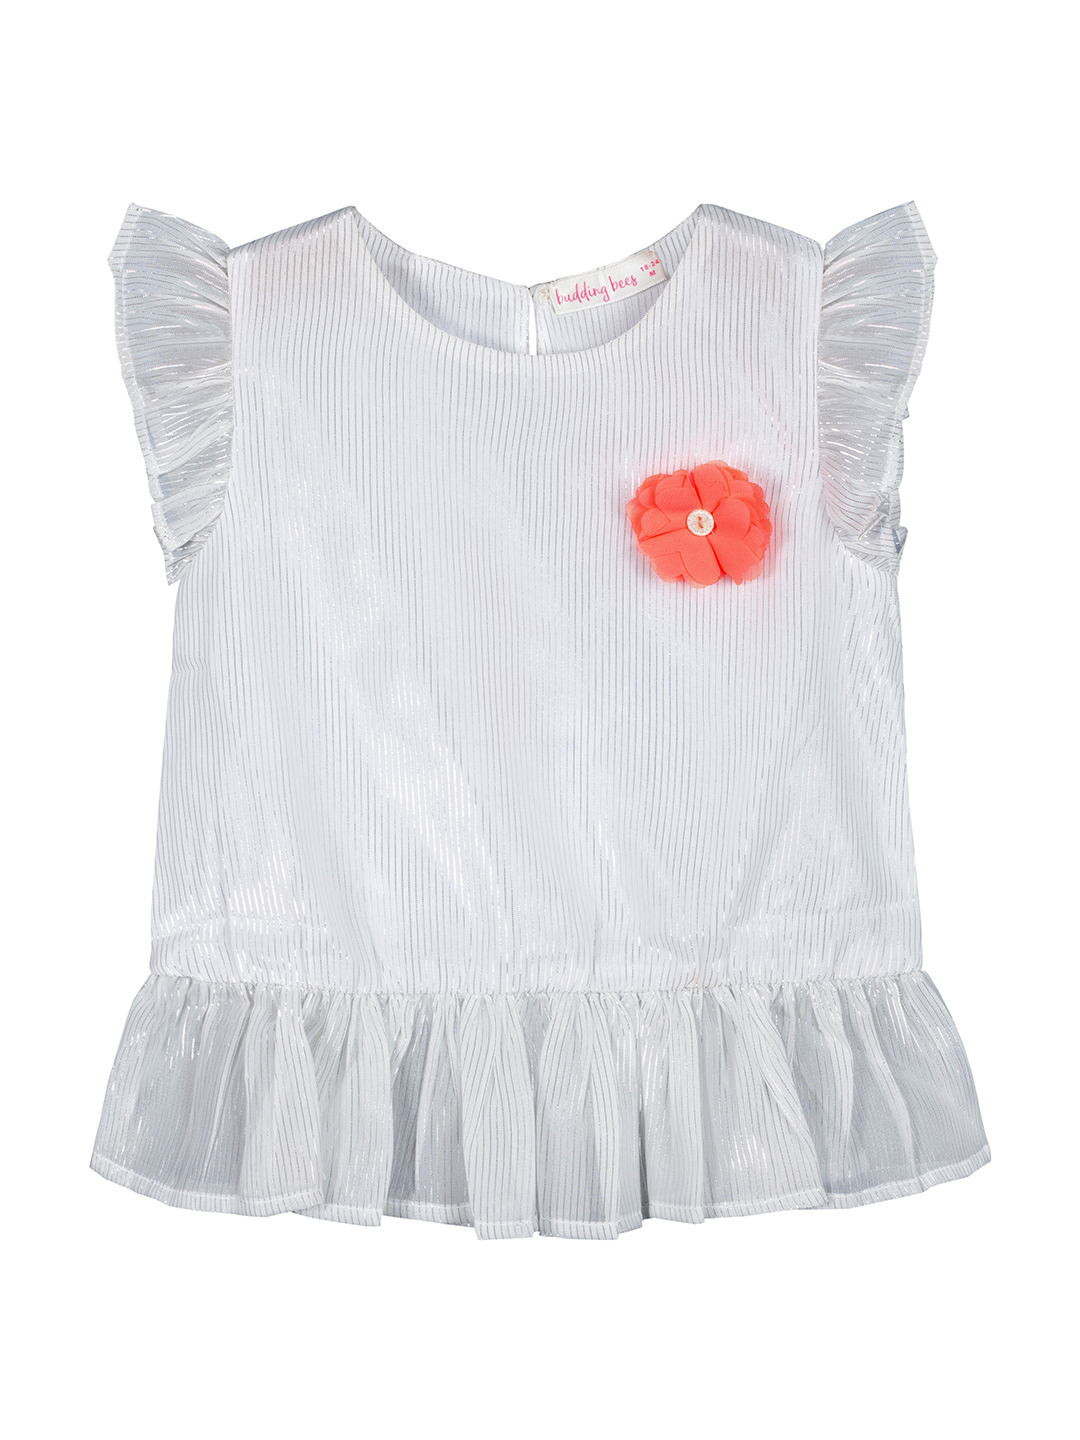 Budding Bees | Budding Bees Girls Poly Lurex Dress With Beautiful Flower-White